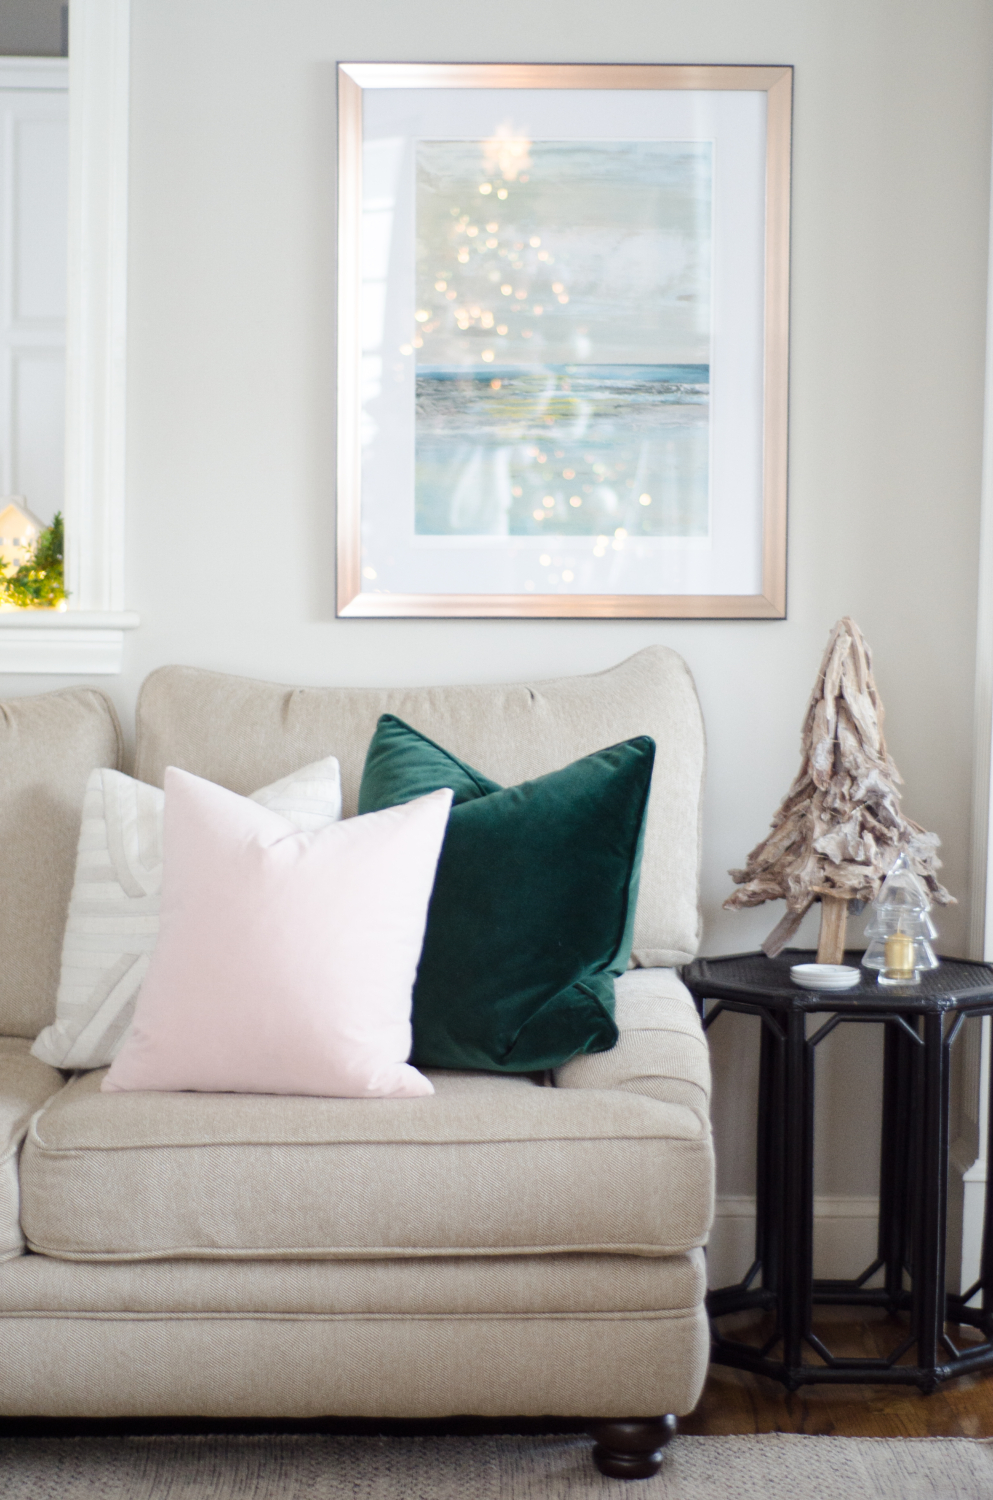 Understated, sophisticated Christmas color palette of beige, white, blush pink, and hunter green.